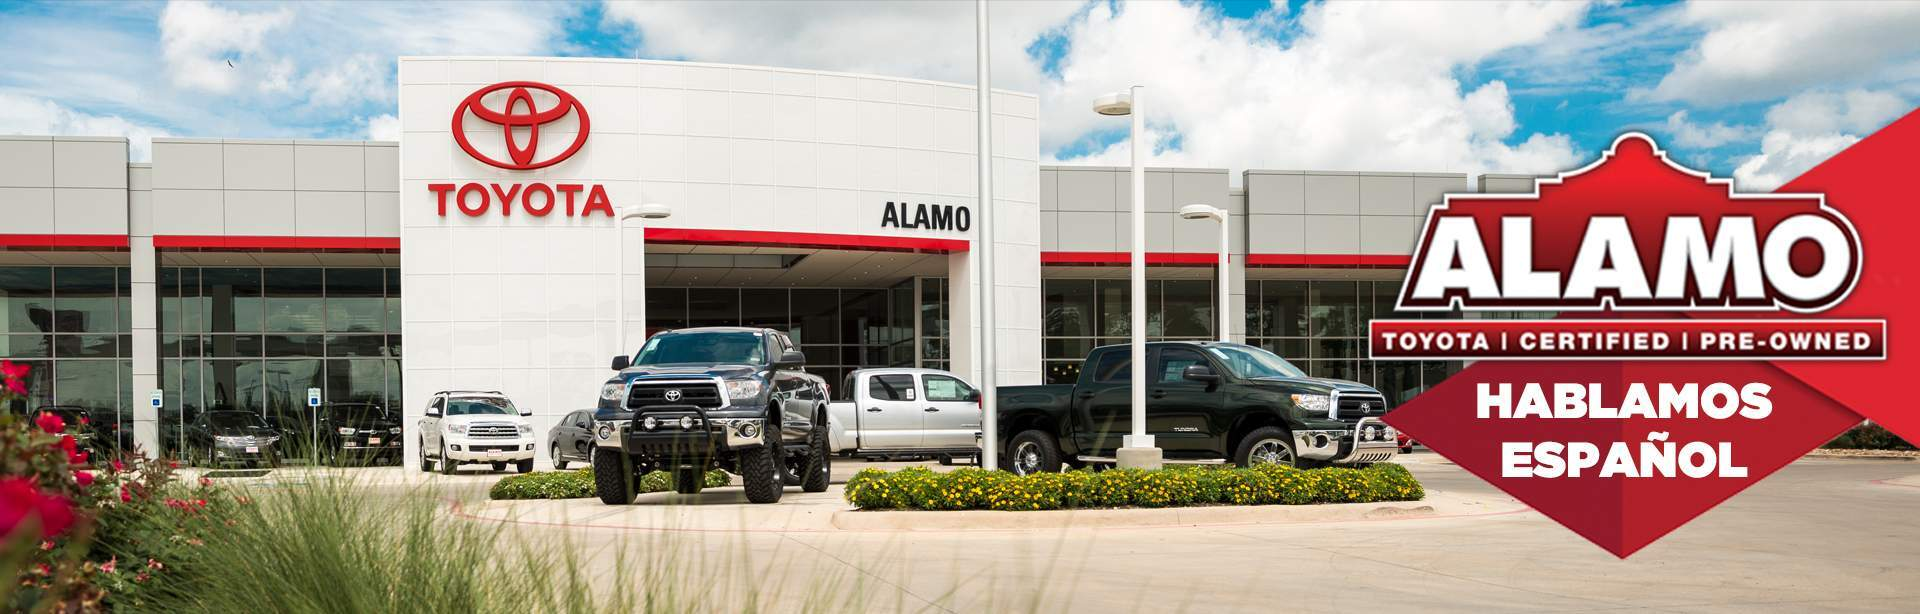 Toyota Dealership San Antonio Tx Used Cars Alamo Toyota